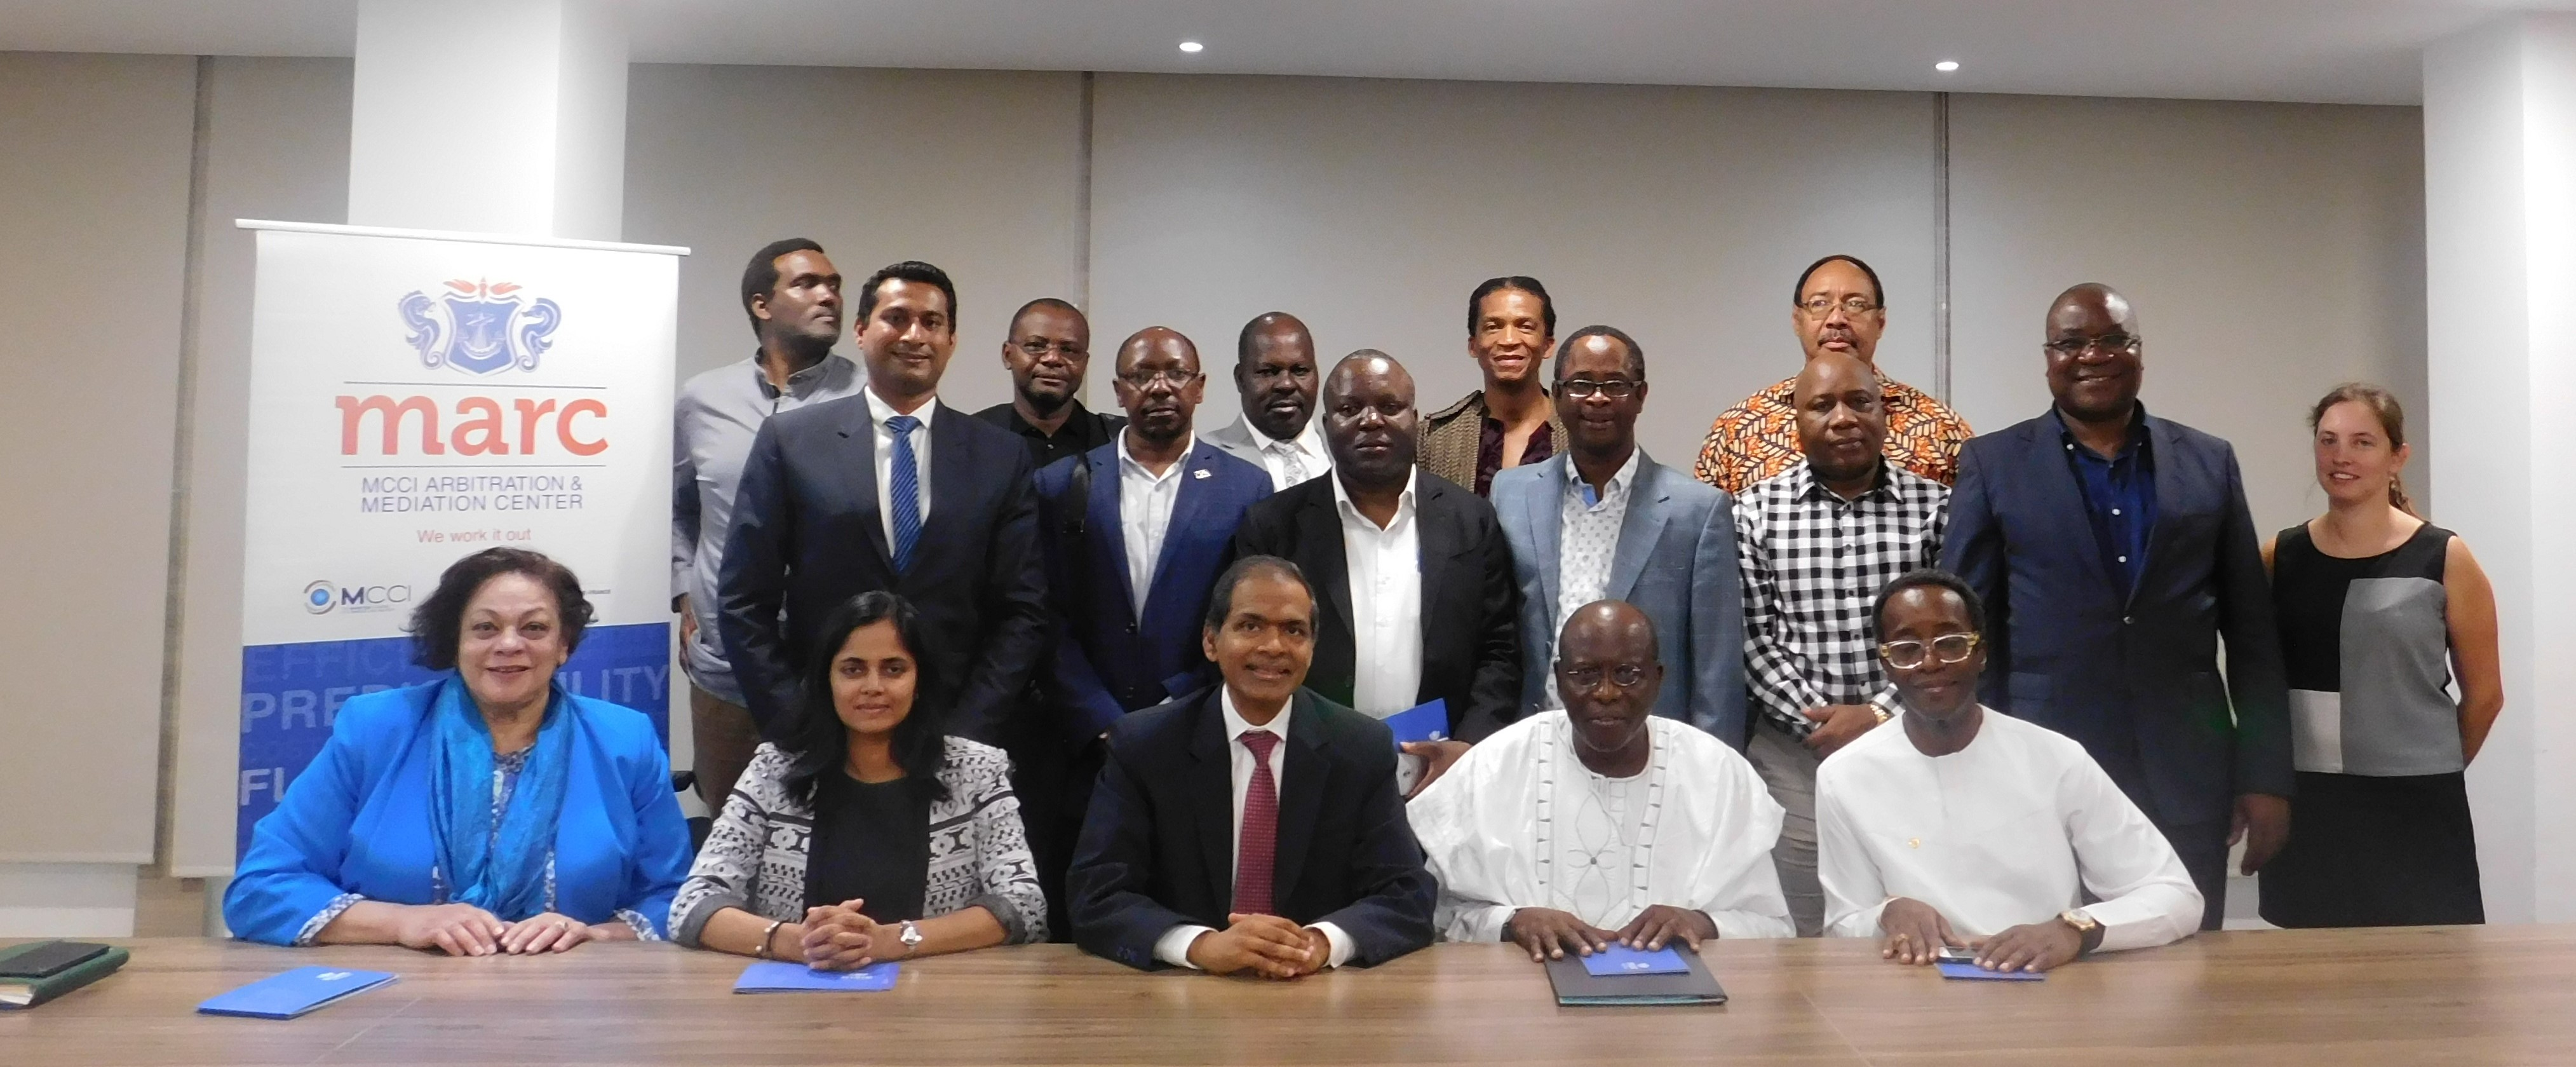 MARC signs MoU with the Africa Union of Architects